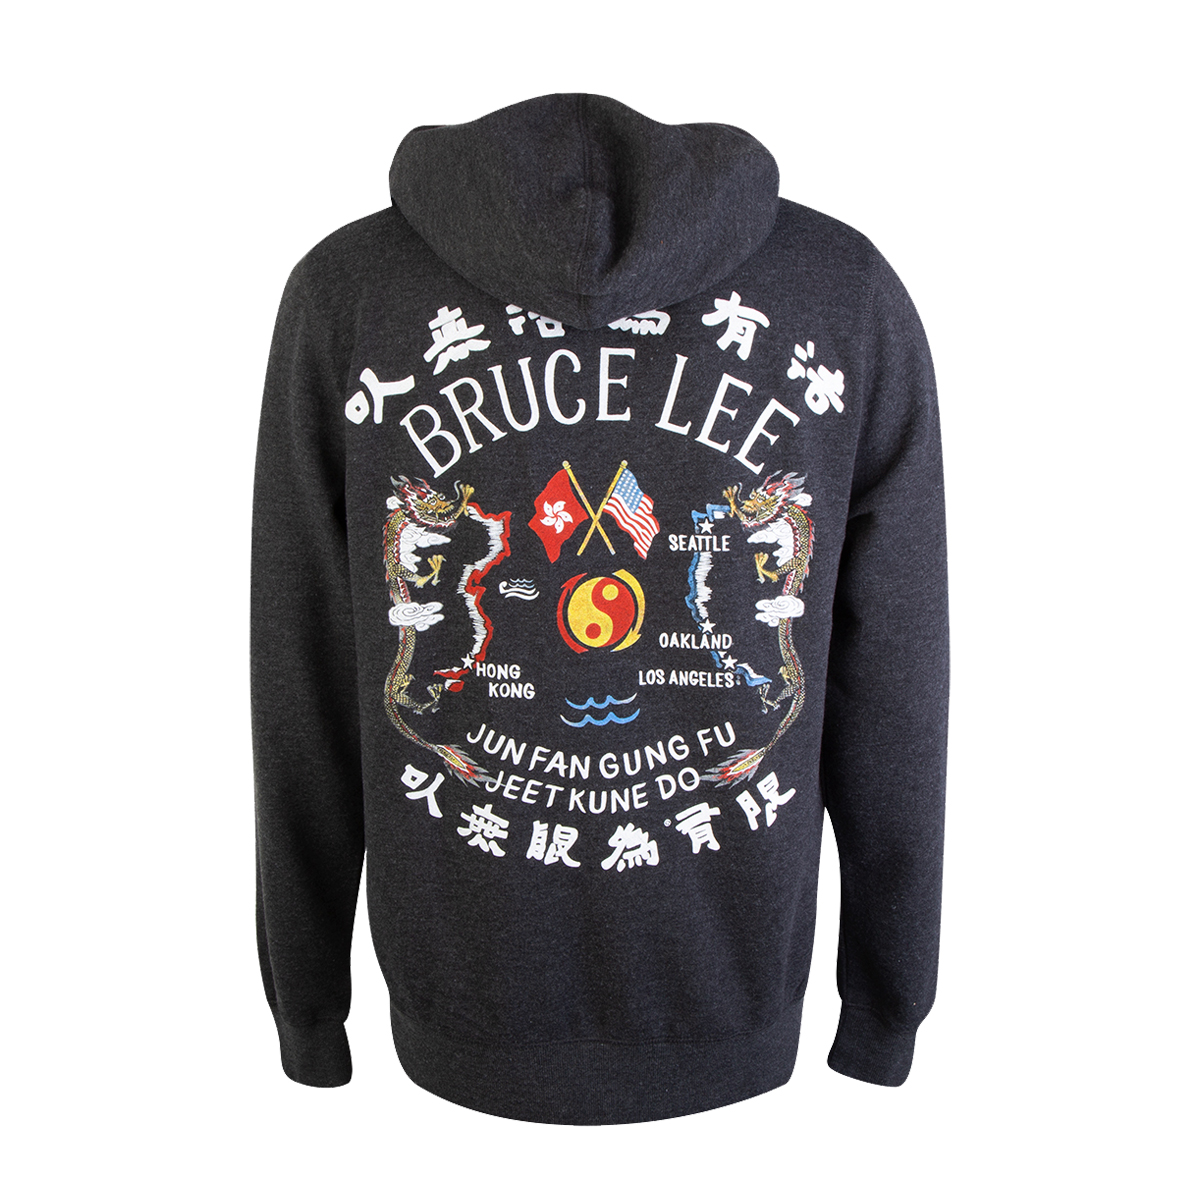 Bruce Lee JFGF Dragon Full-Zip Tri-Blend Hoodie